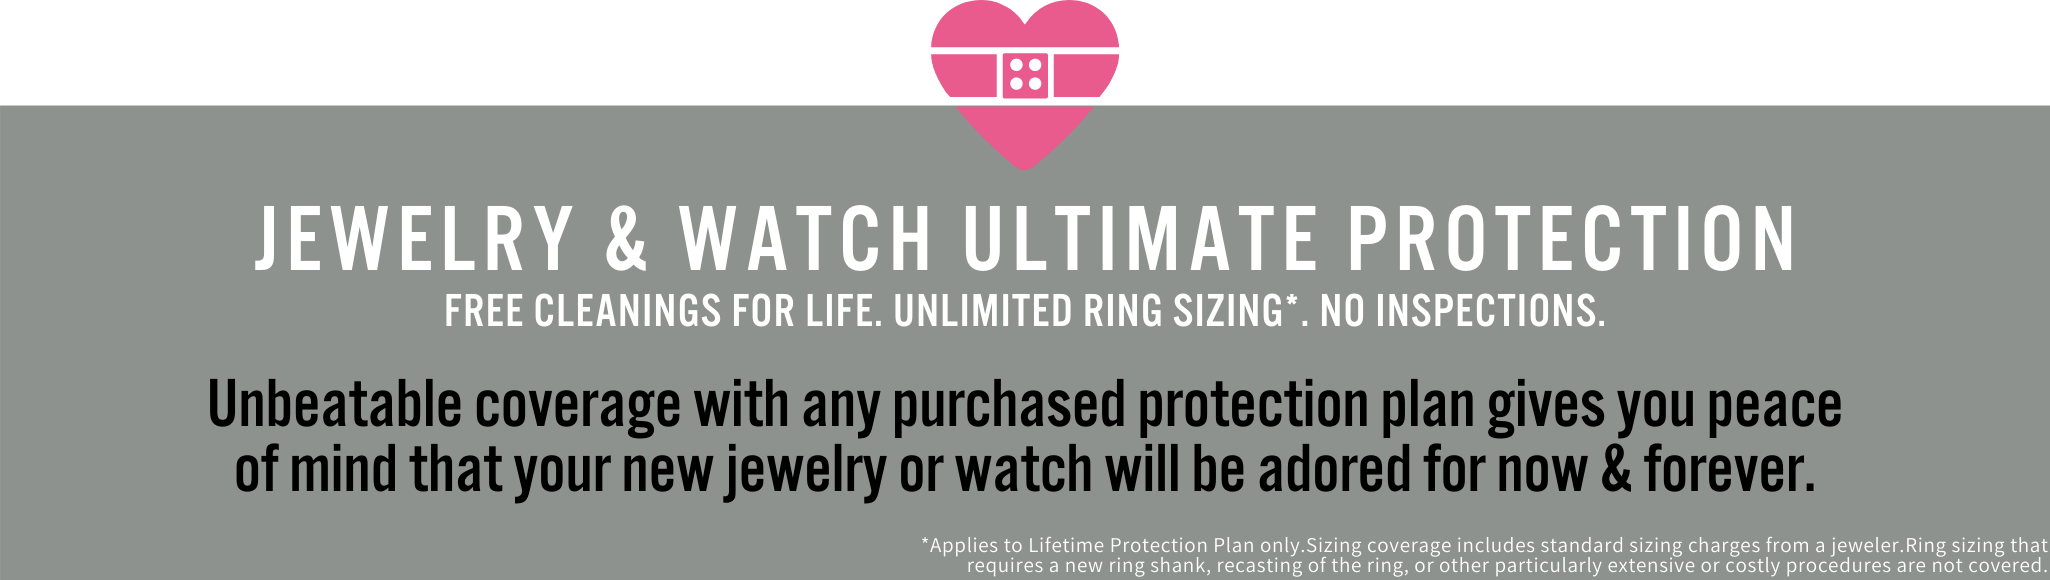 jewelry lifetime protection